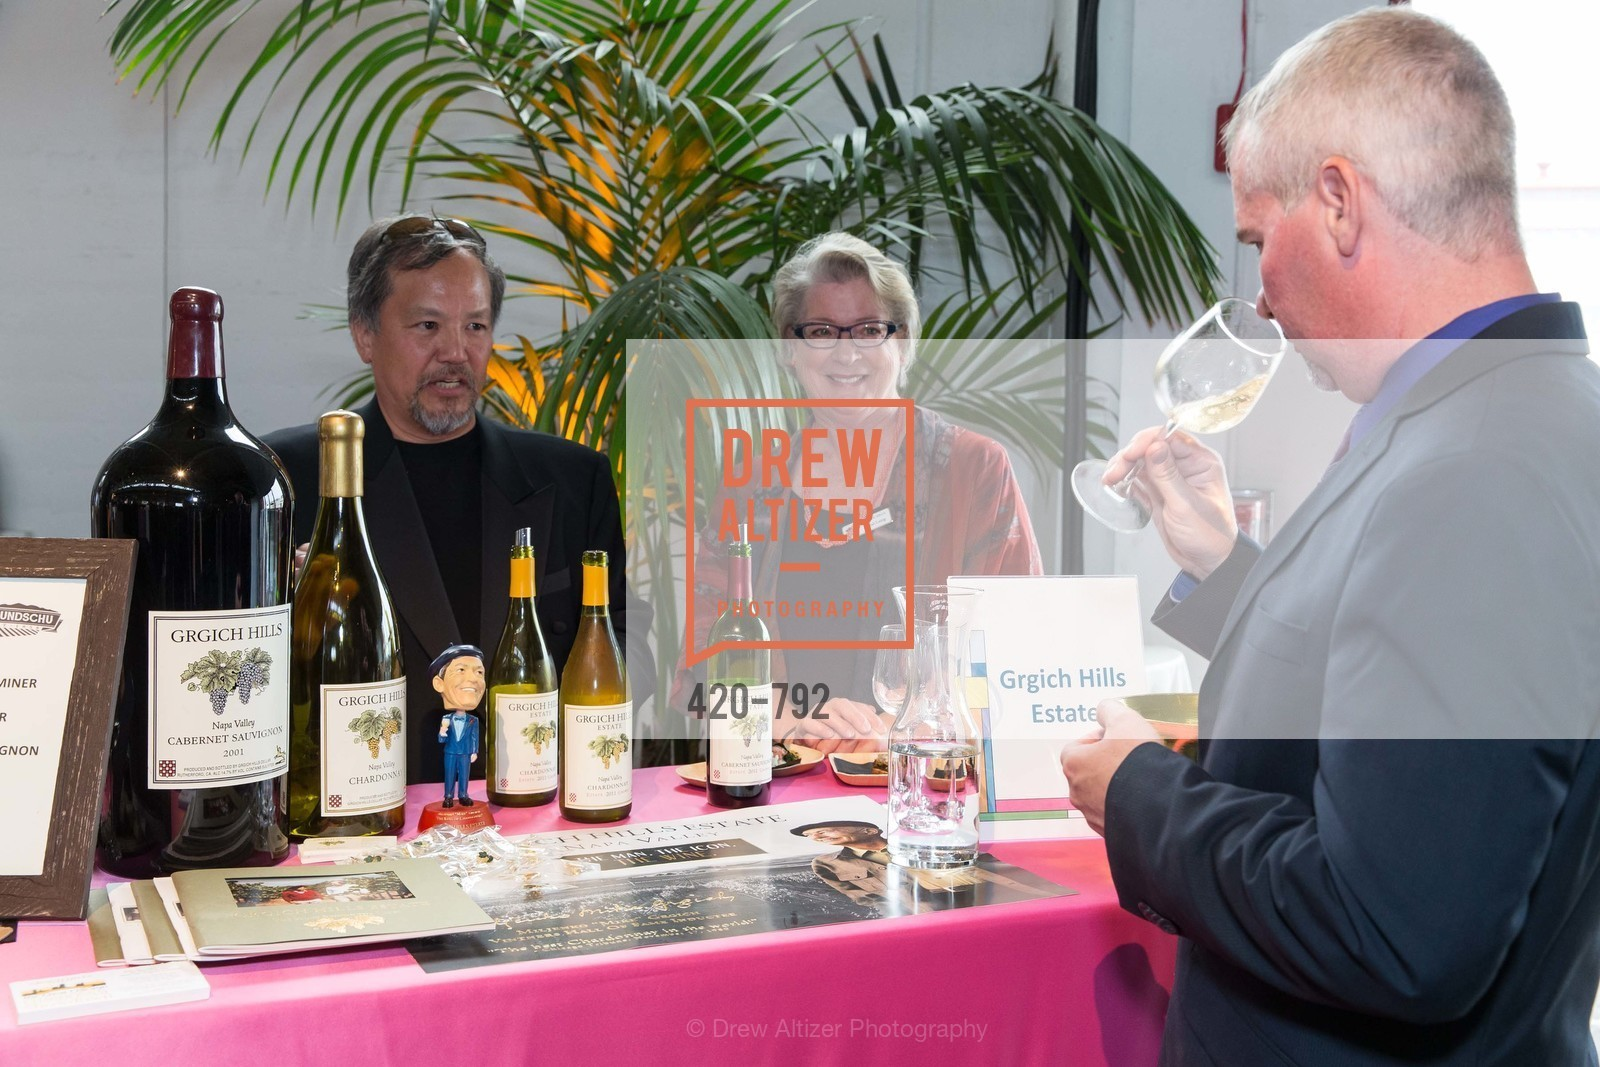 Grgich Hills Estate, MEALS ON WHEELS OF SAN FRANCISCO'S 28th Annual Star Chefs and Vintners Gala, US, April 20th, 2015,Drew Altizer, Drew Altizer Photography, full-service agency, private events, San Francisco photographer, photographer california